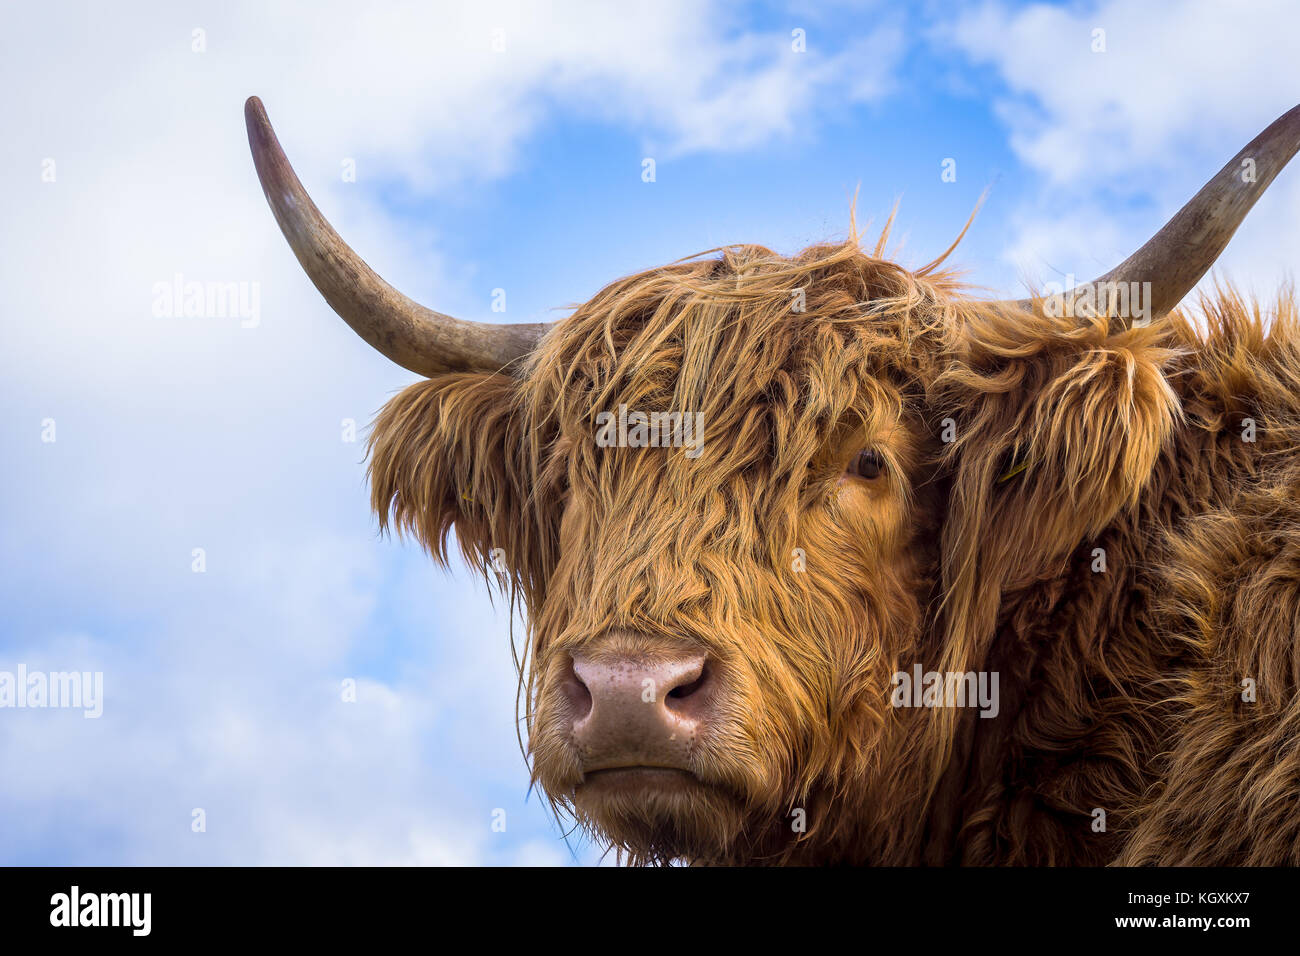 Brown long hair highland cow aginst the sky, looking into the camera, Sjaelland, Denmark, October 6, 2017 - Stock Image